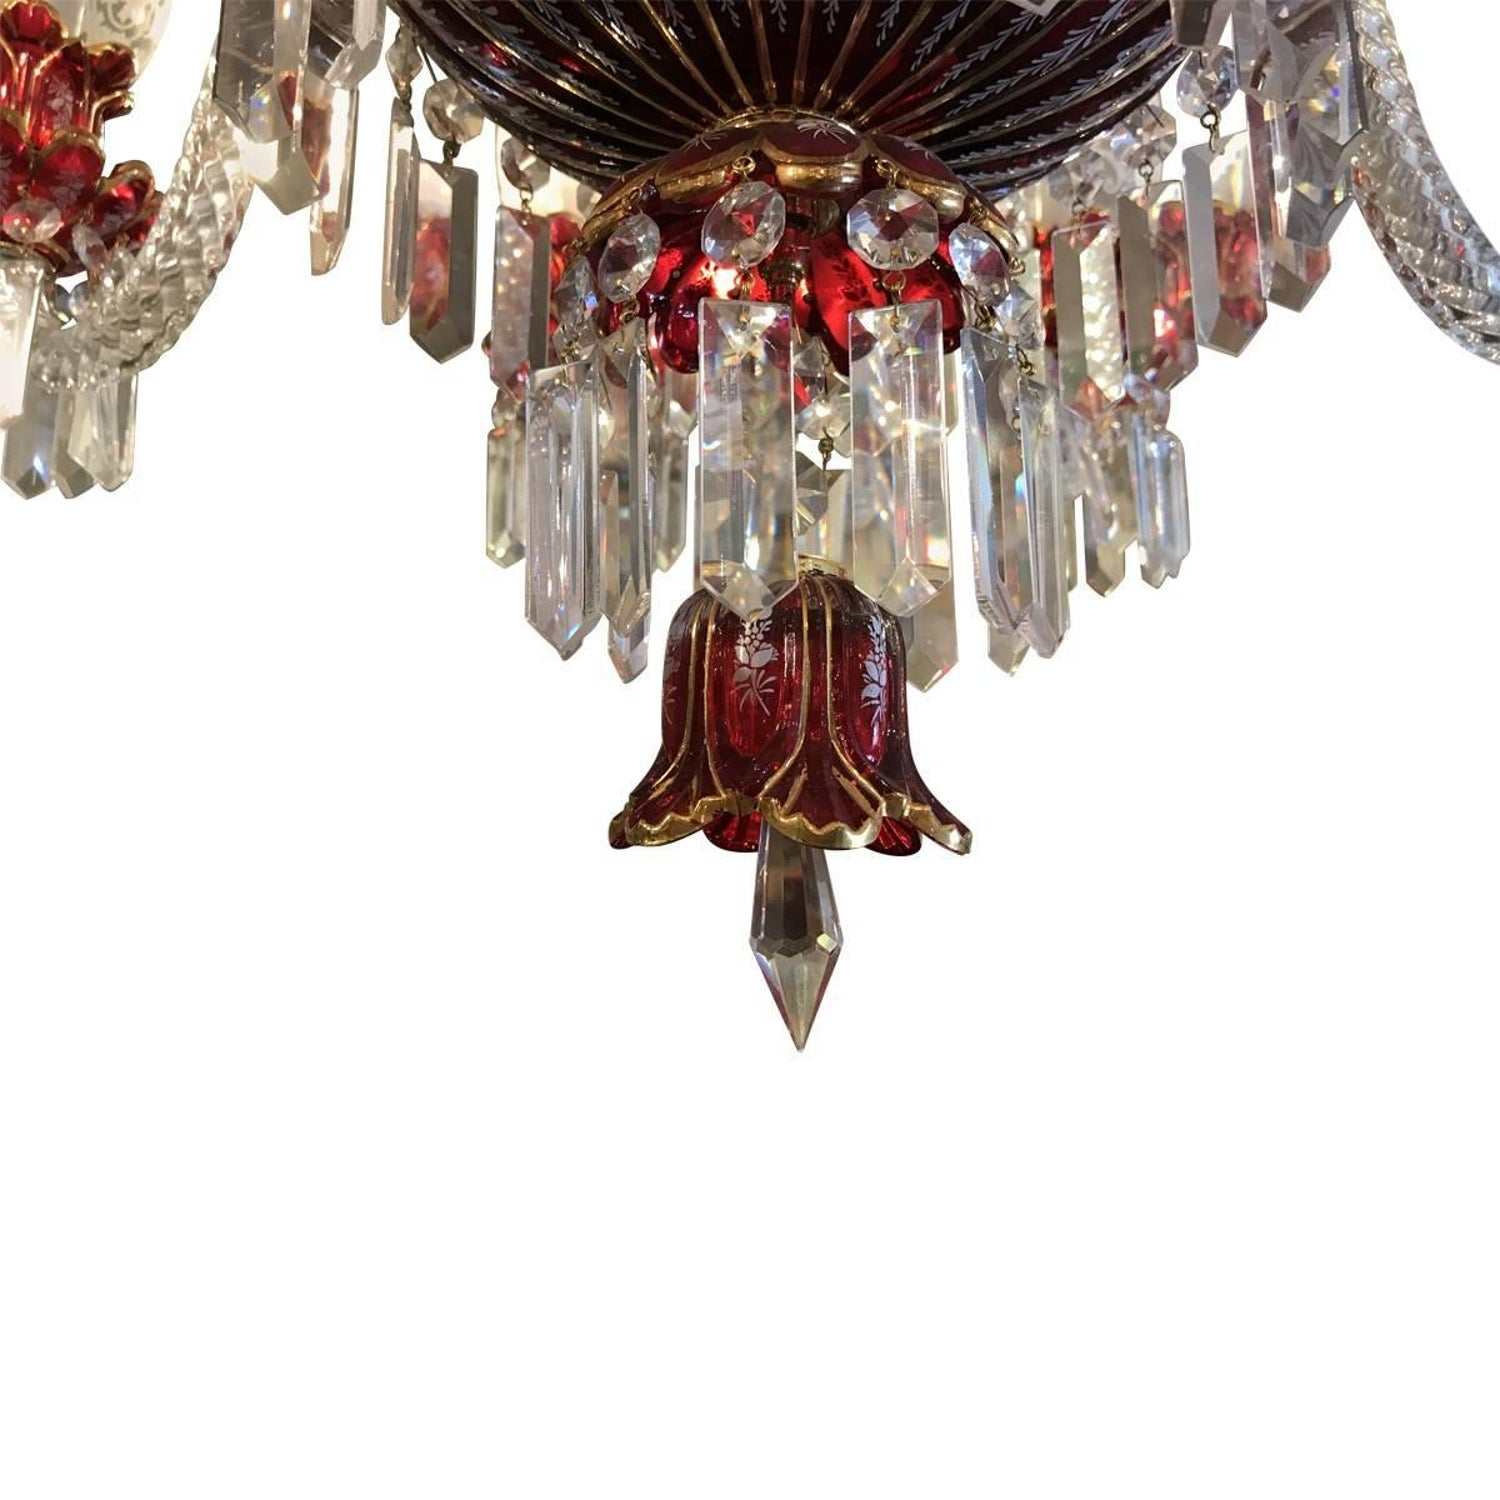 20th century baccarat style bohemian ruby glass crystal 24 karat 20th century baccarat style bohemian ruby glass crystal 24 karat gold chandelier at 1stdibs arubaitofo Image collections